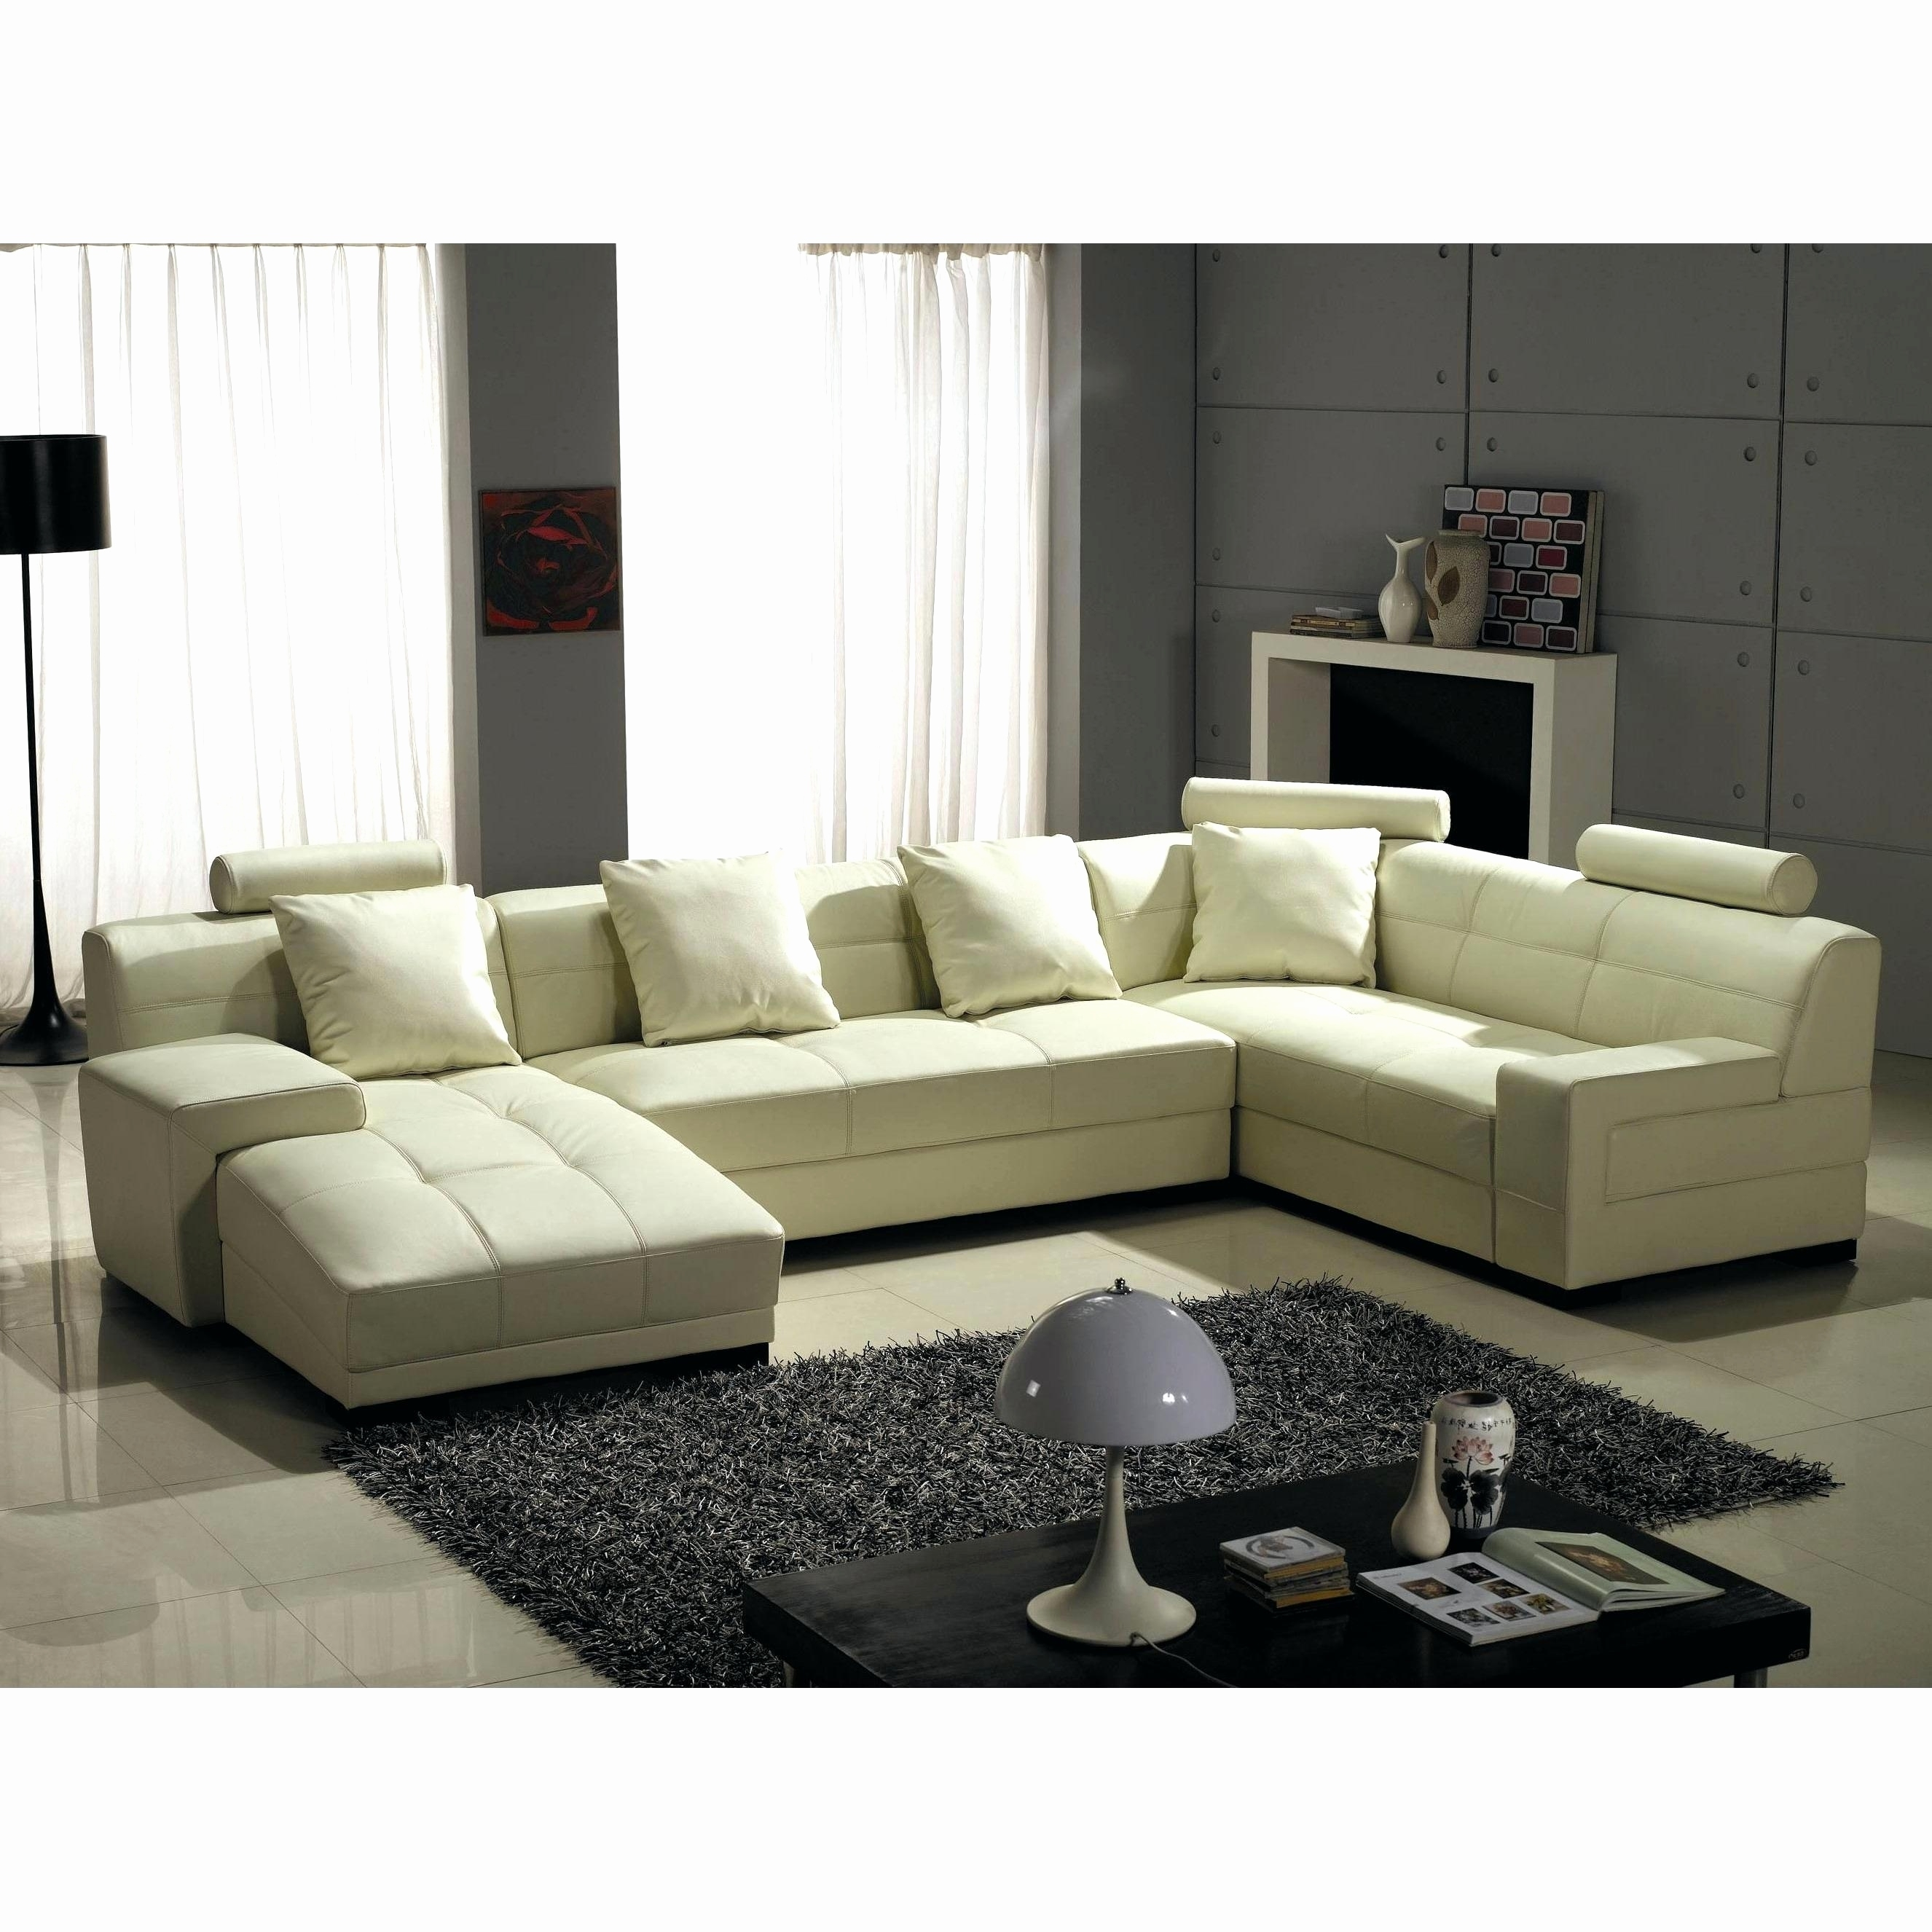 New Sectional Couch For Sale 2018 – Couches And Sofas Ideas Pertaining To Halifax Sectional Sofas (View 4 of 10)